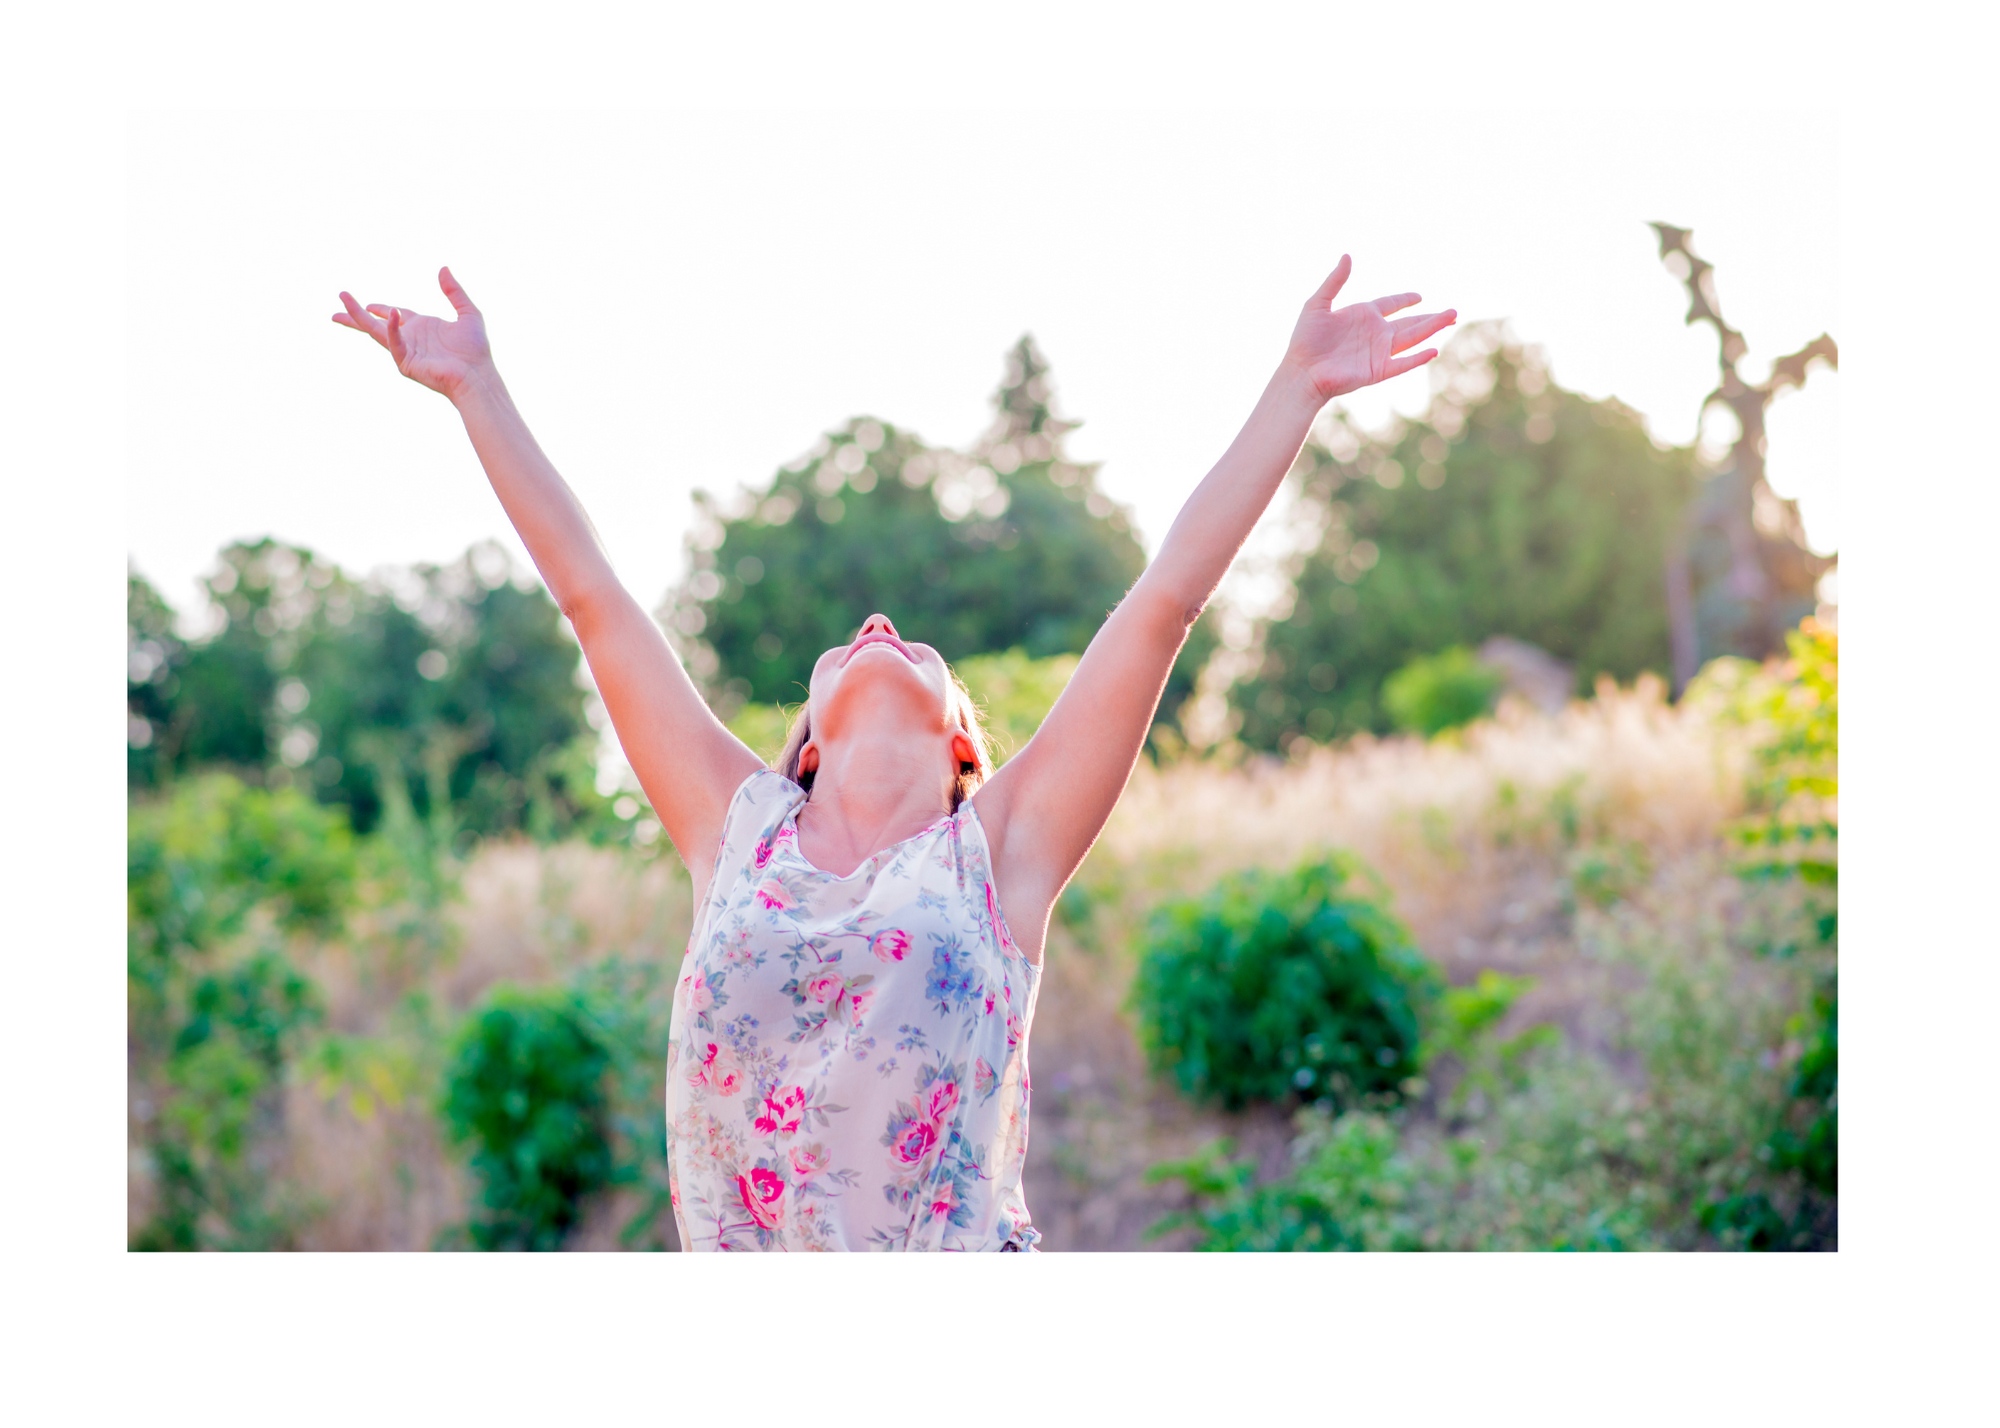 A joyful person in a flowered top raises their arms to the sunshine